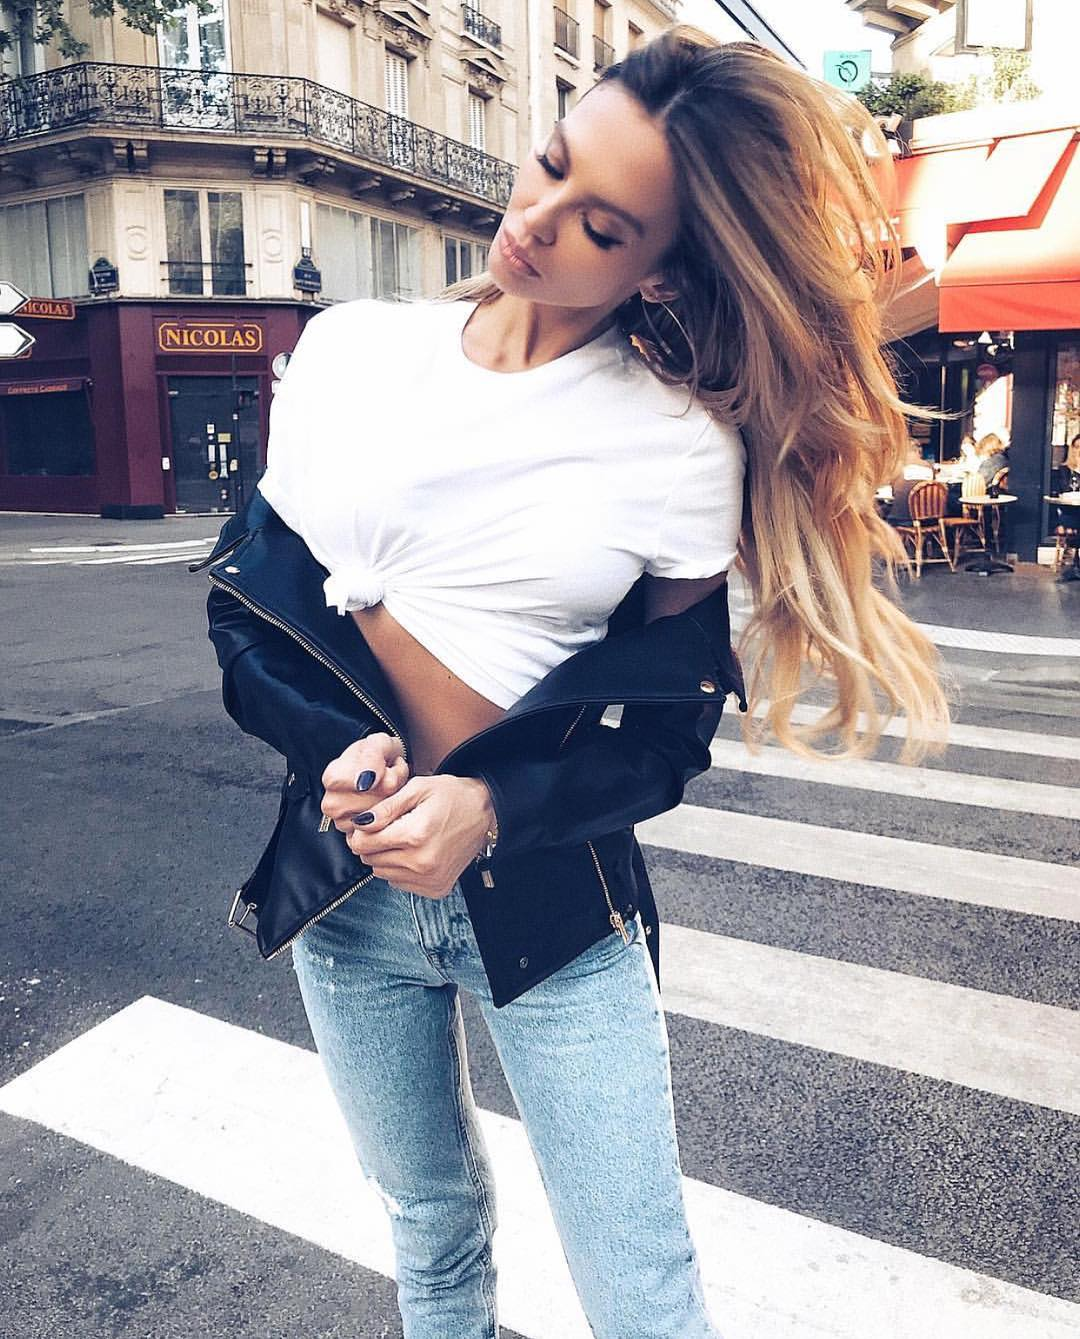 Get Inspired By This Grunge Style Summer Look With Black Leather Jacket 2019